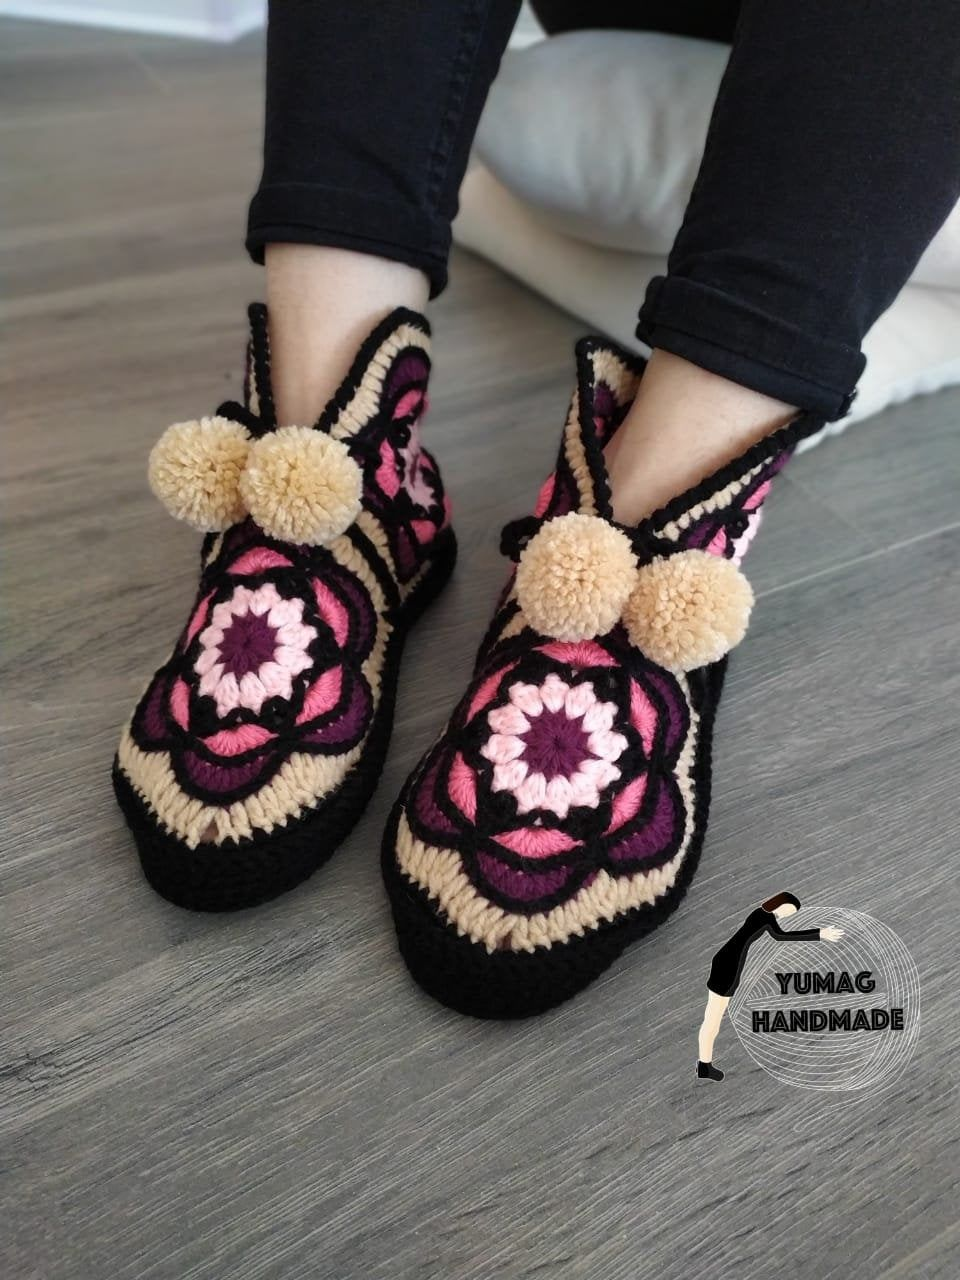 Handmade Slippers, Floral Indoor Boots, Acrylic Wa